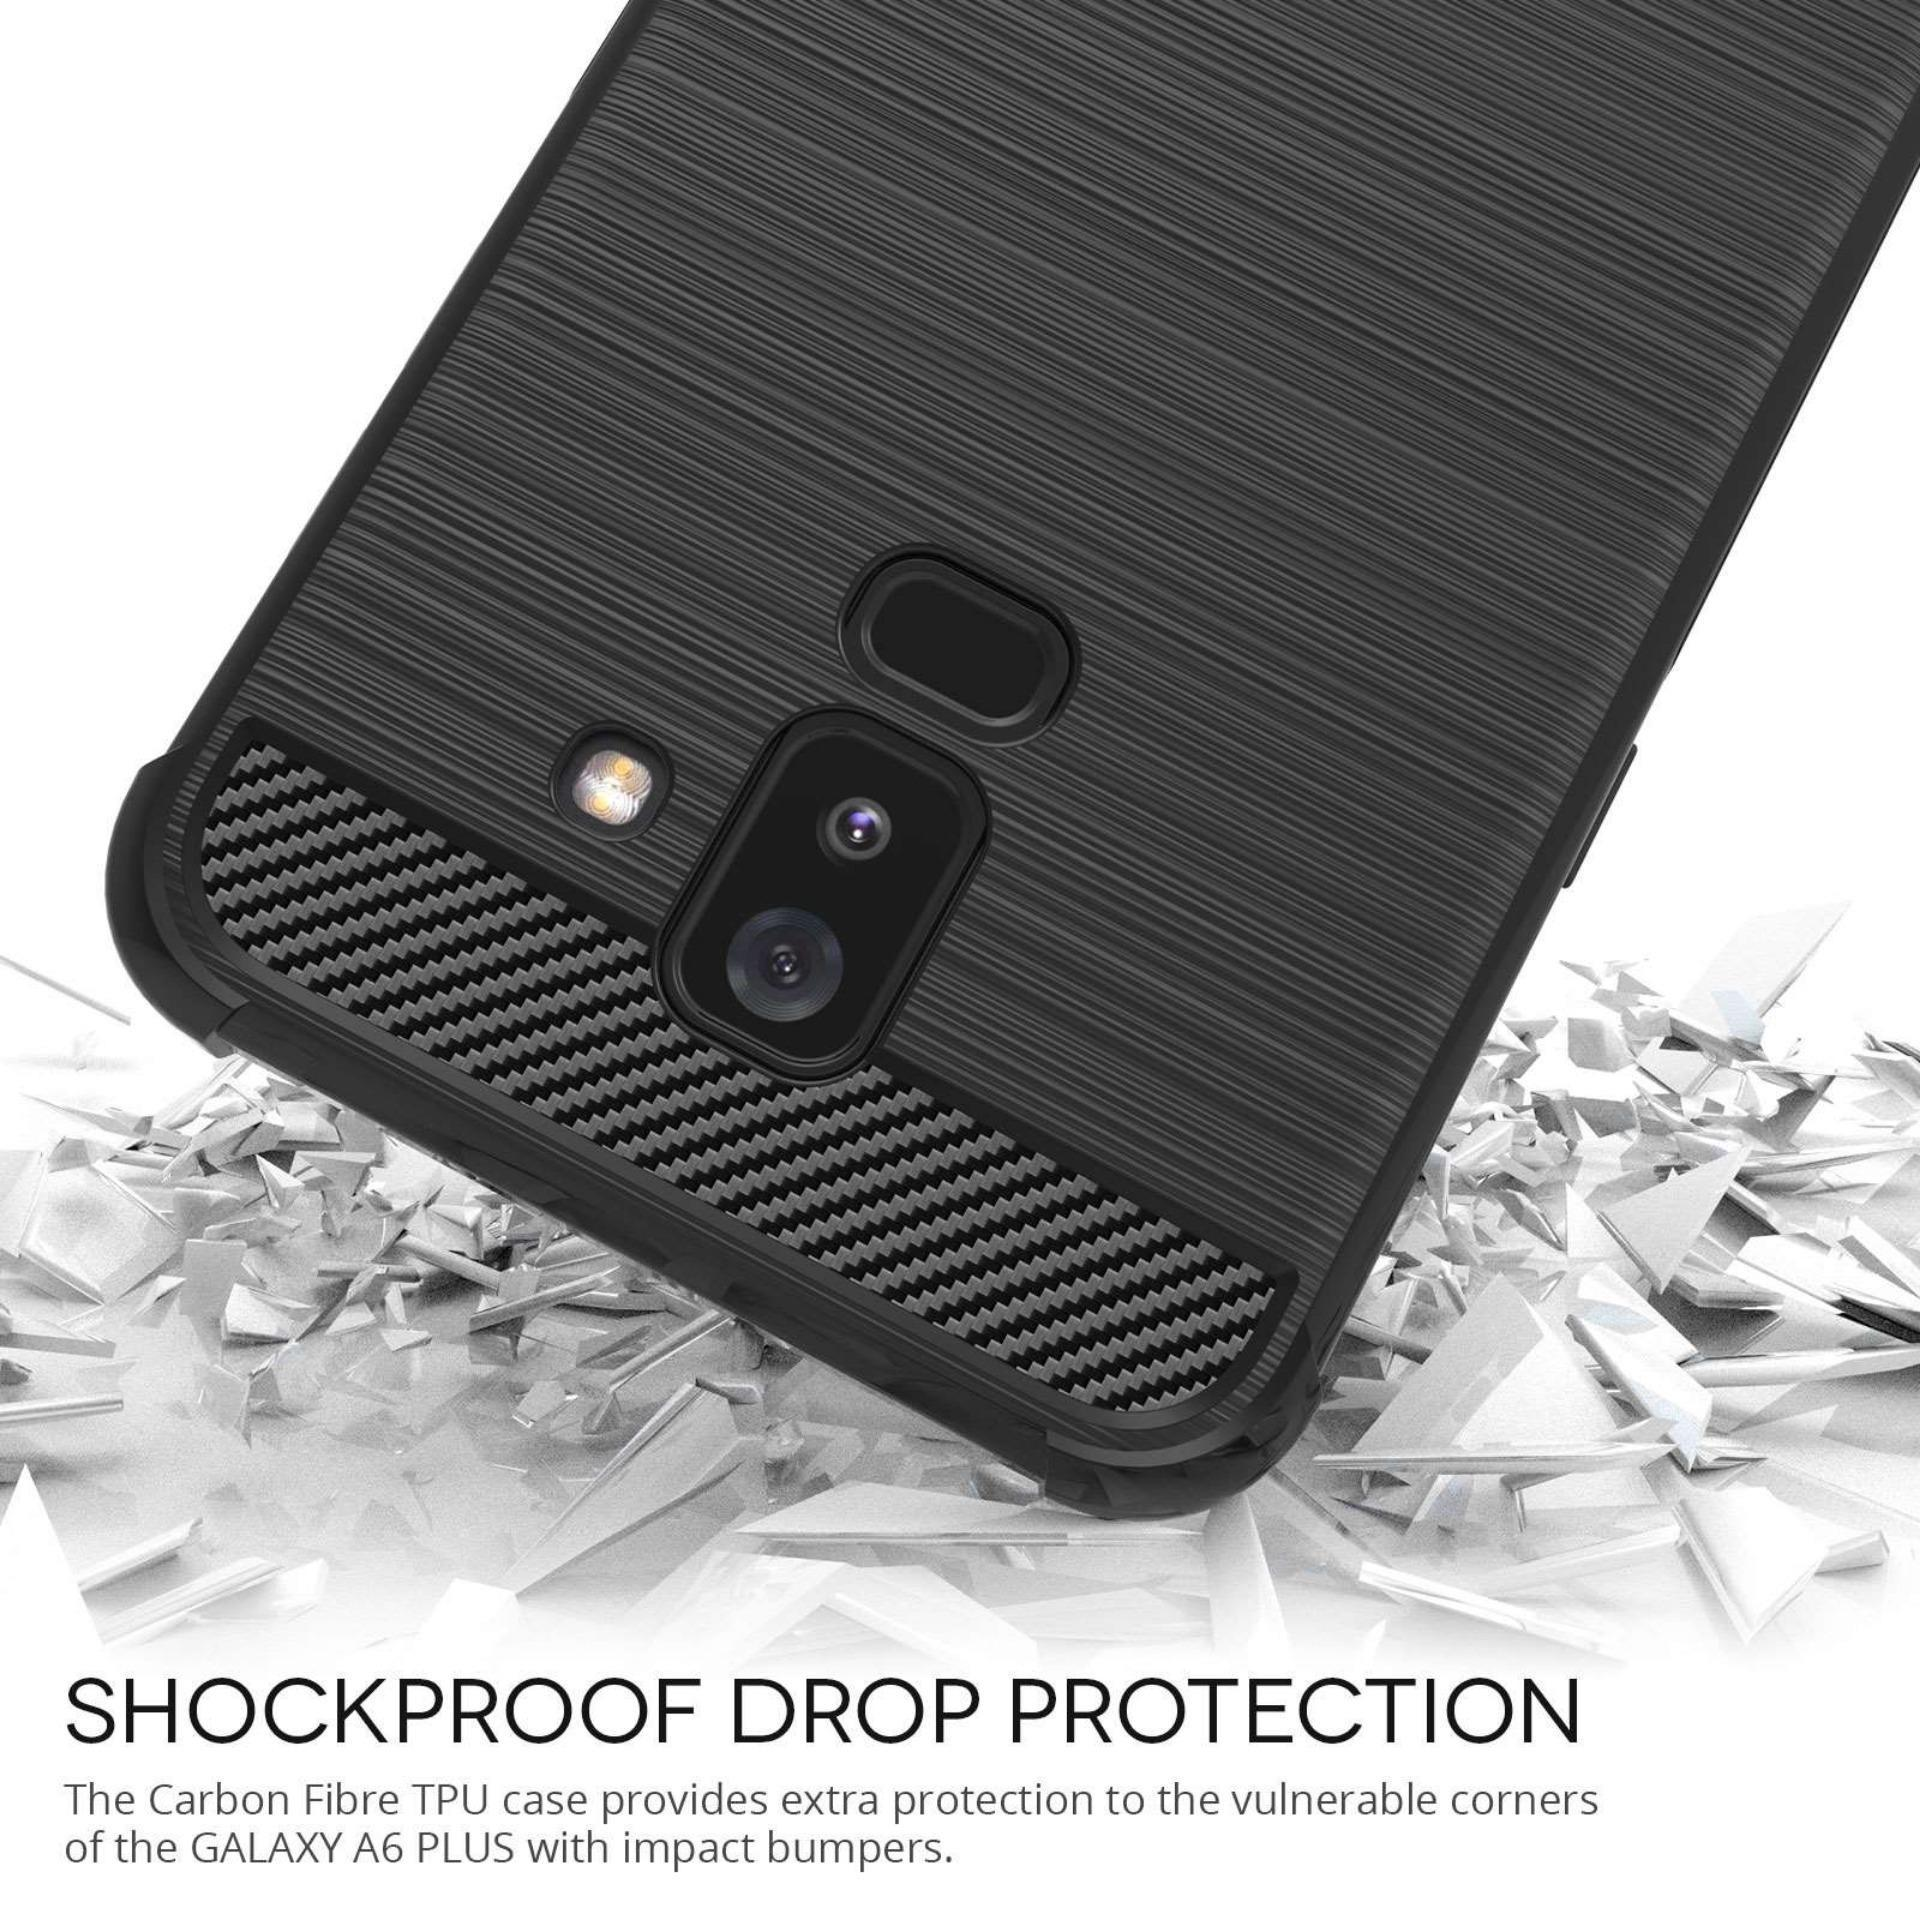 ... Renzanaacc Brushed Corner Protection Cushion Premium Carbon Shockproof TPU Case For Samsung Galaxy A6 Plus 2018